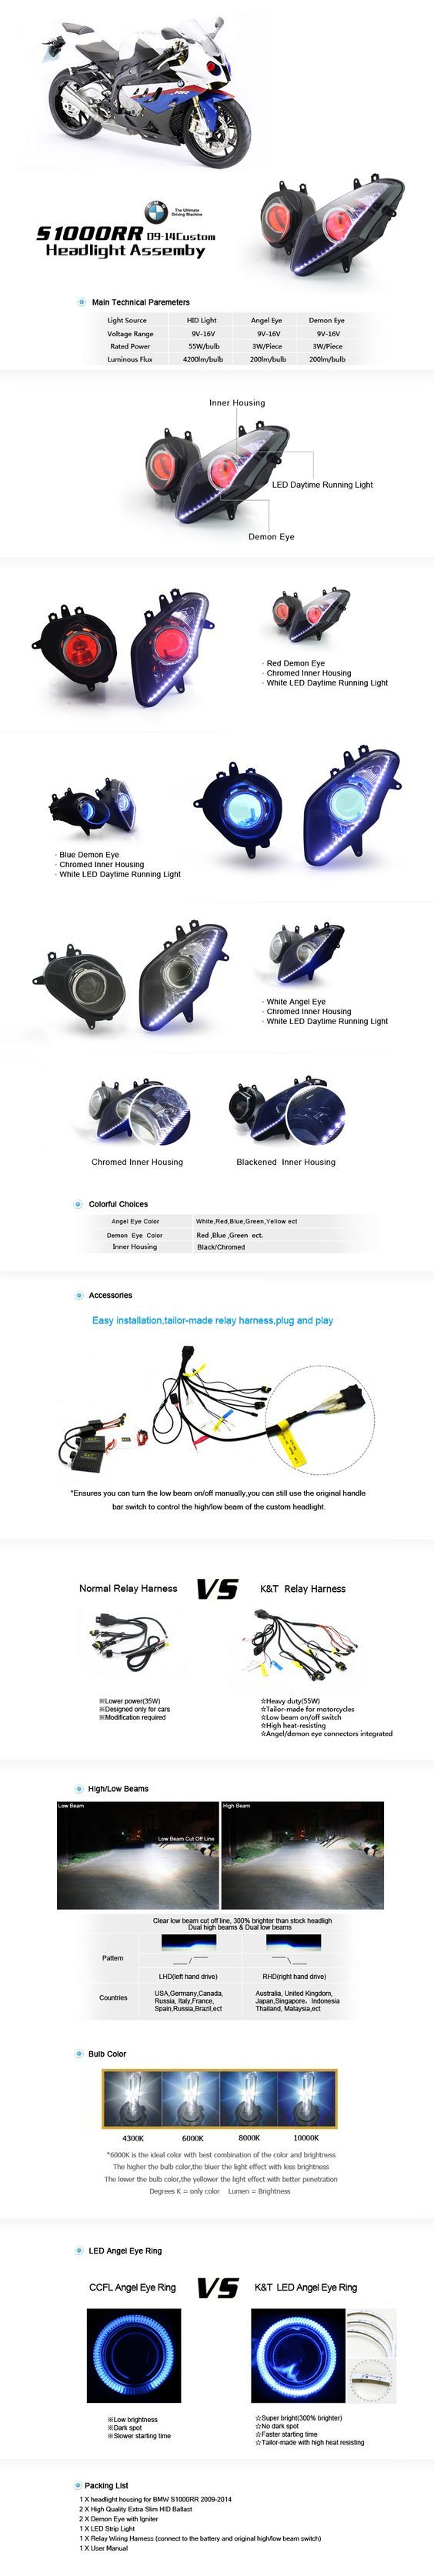 BMW S1000RR HID Projectors Headlight Assemlby 2009-2014